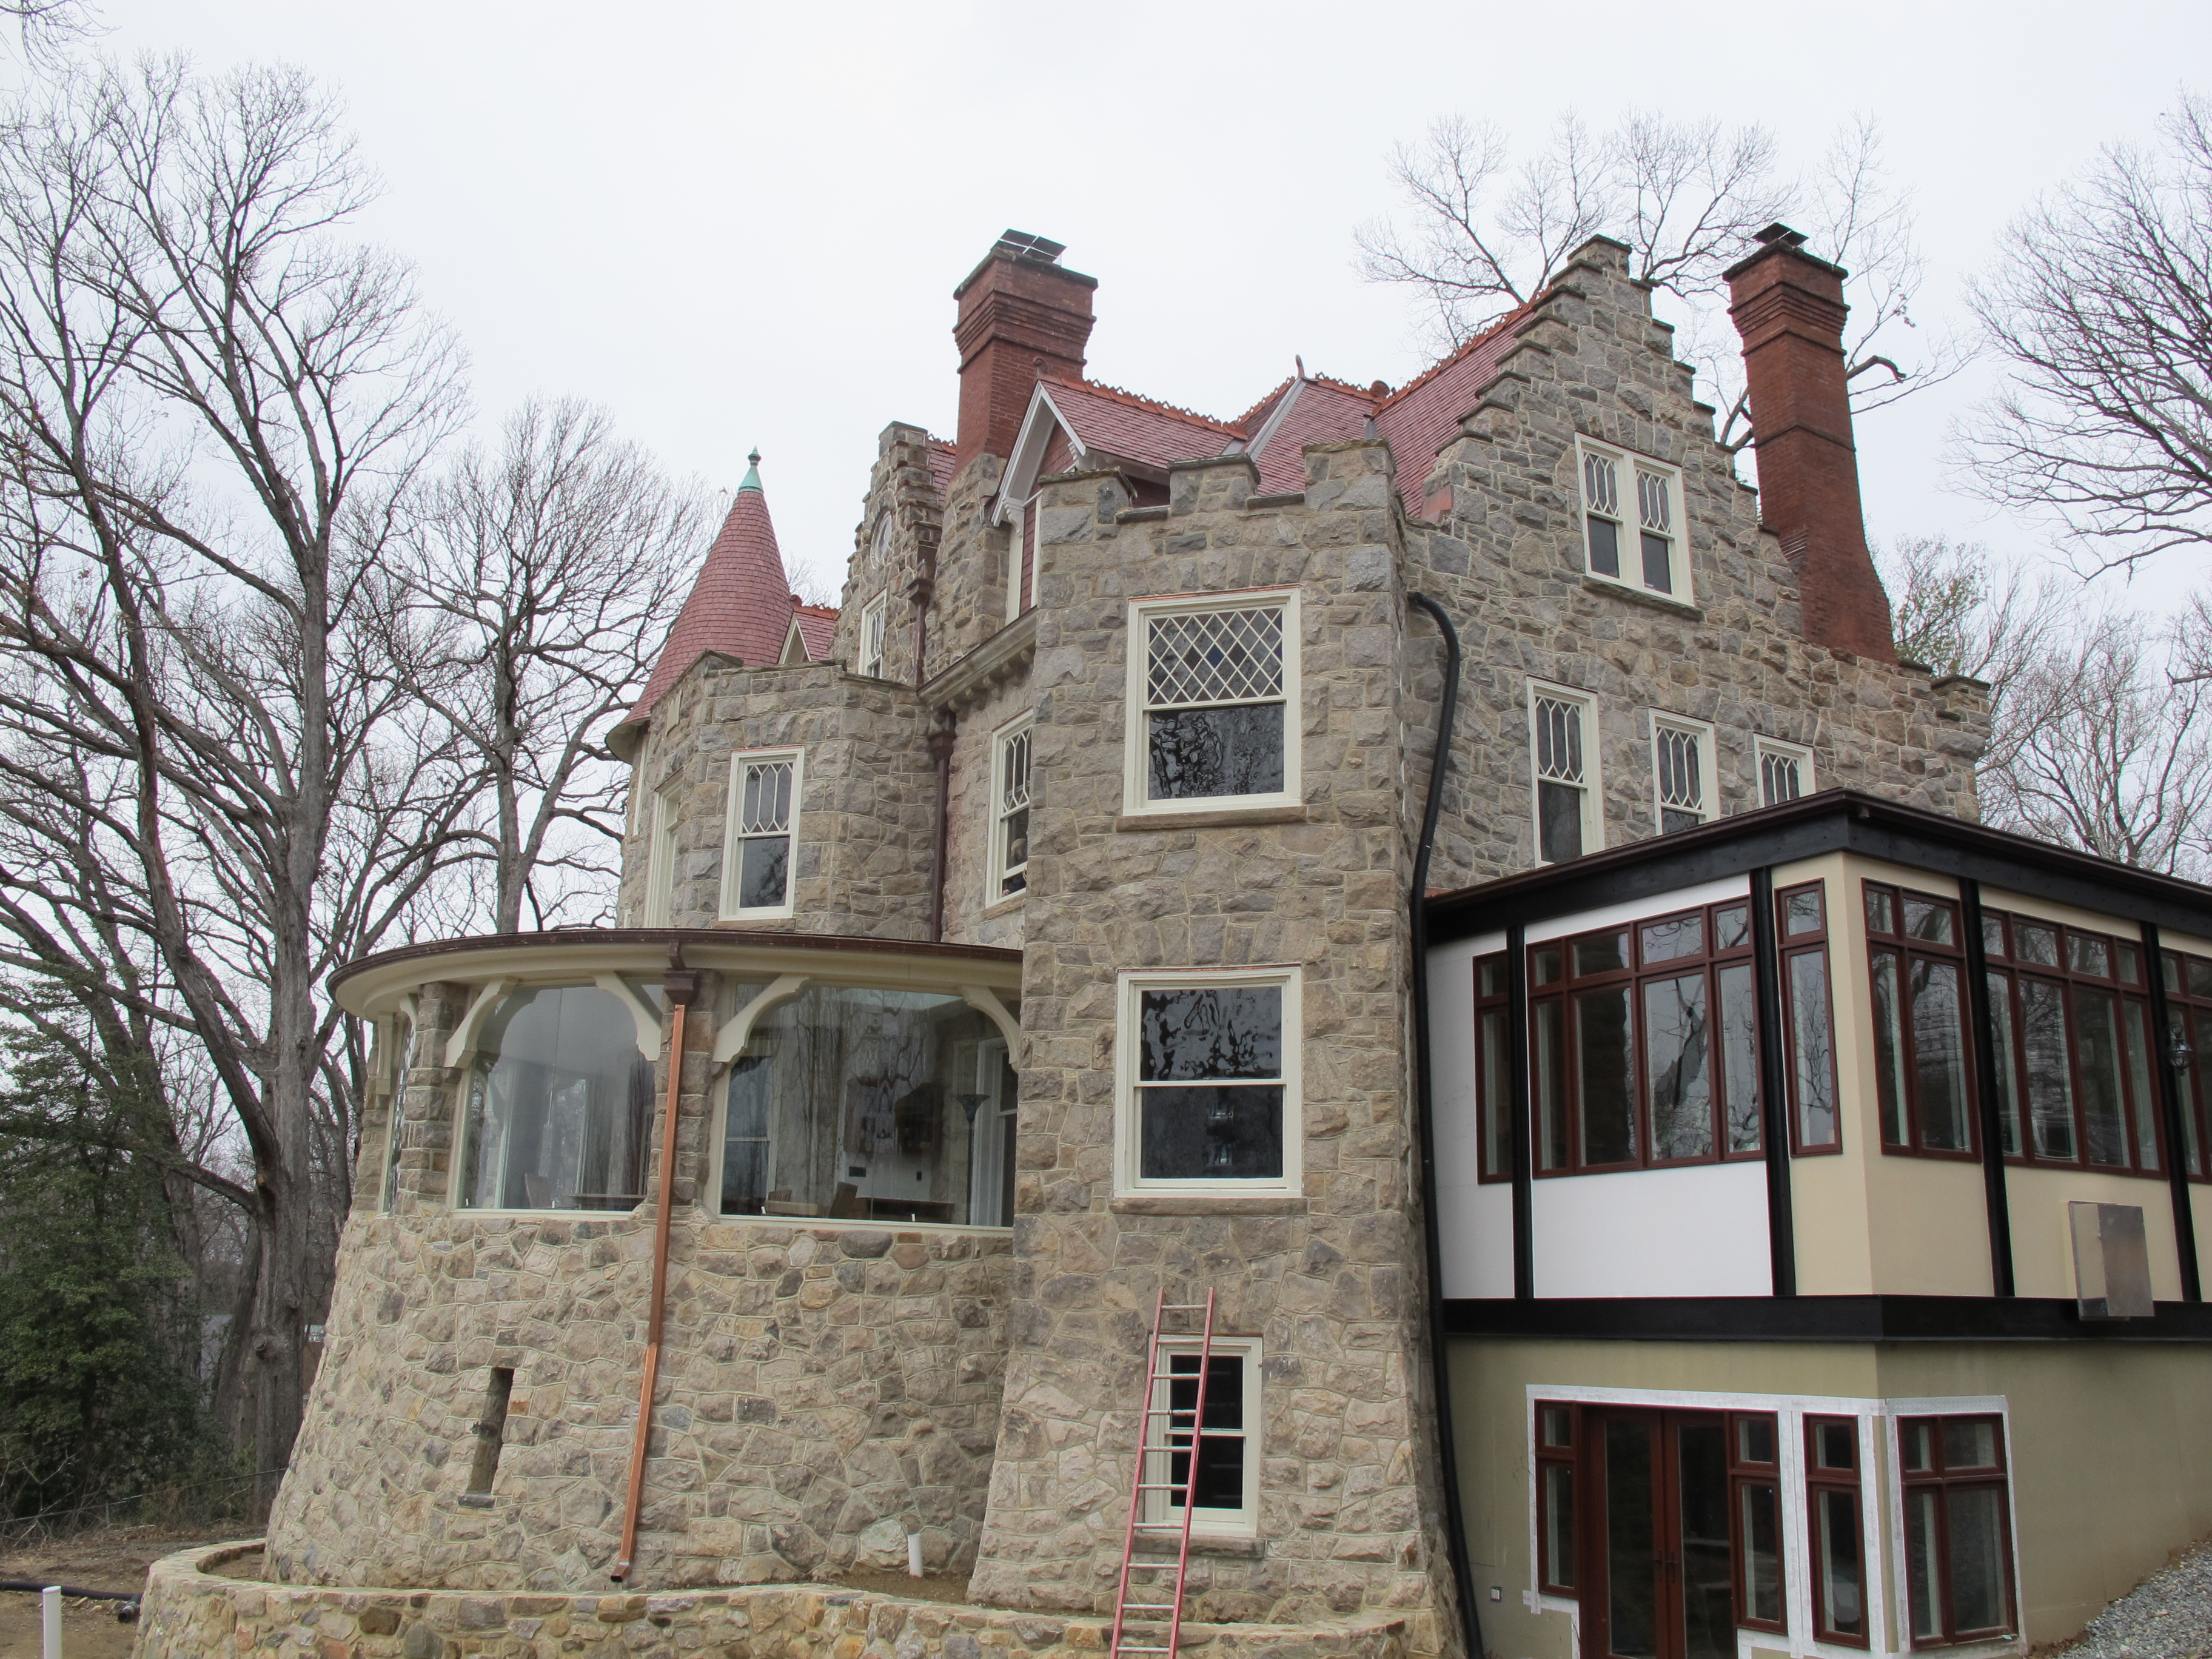 Long deteriorated, Baltzley Castle, a Montgomery County historic site, has been rehabbed.